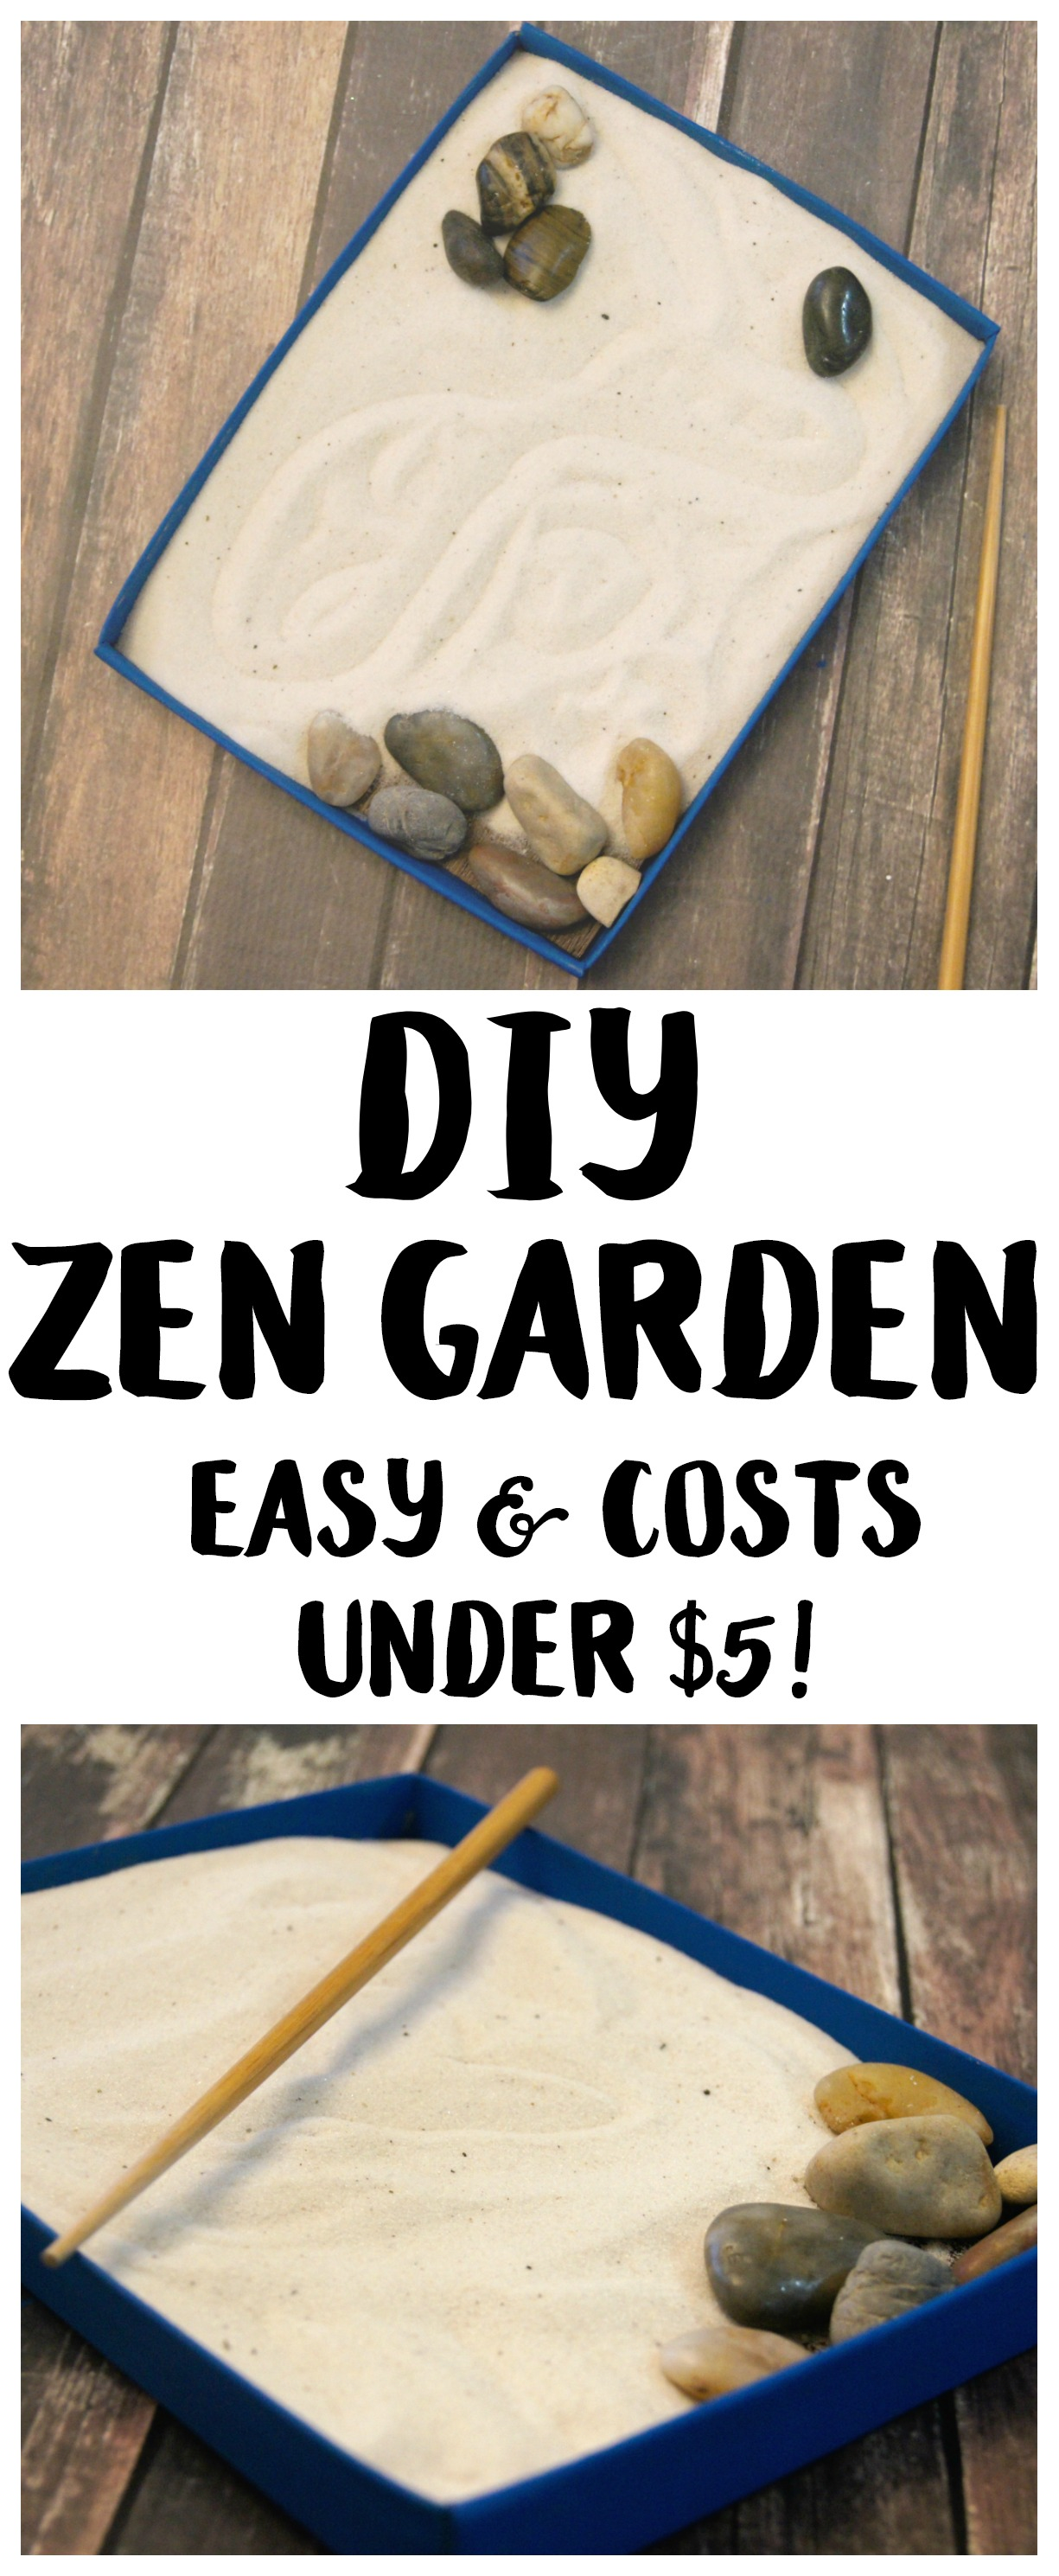 Table Top Zen Garden Diy Tabletop Zen Garden Under 5 Craft Not Quite Susie